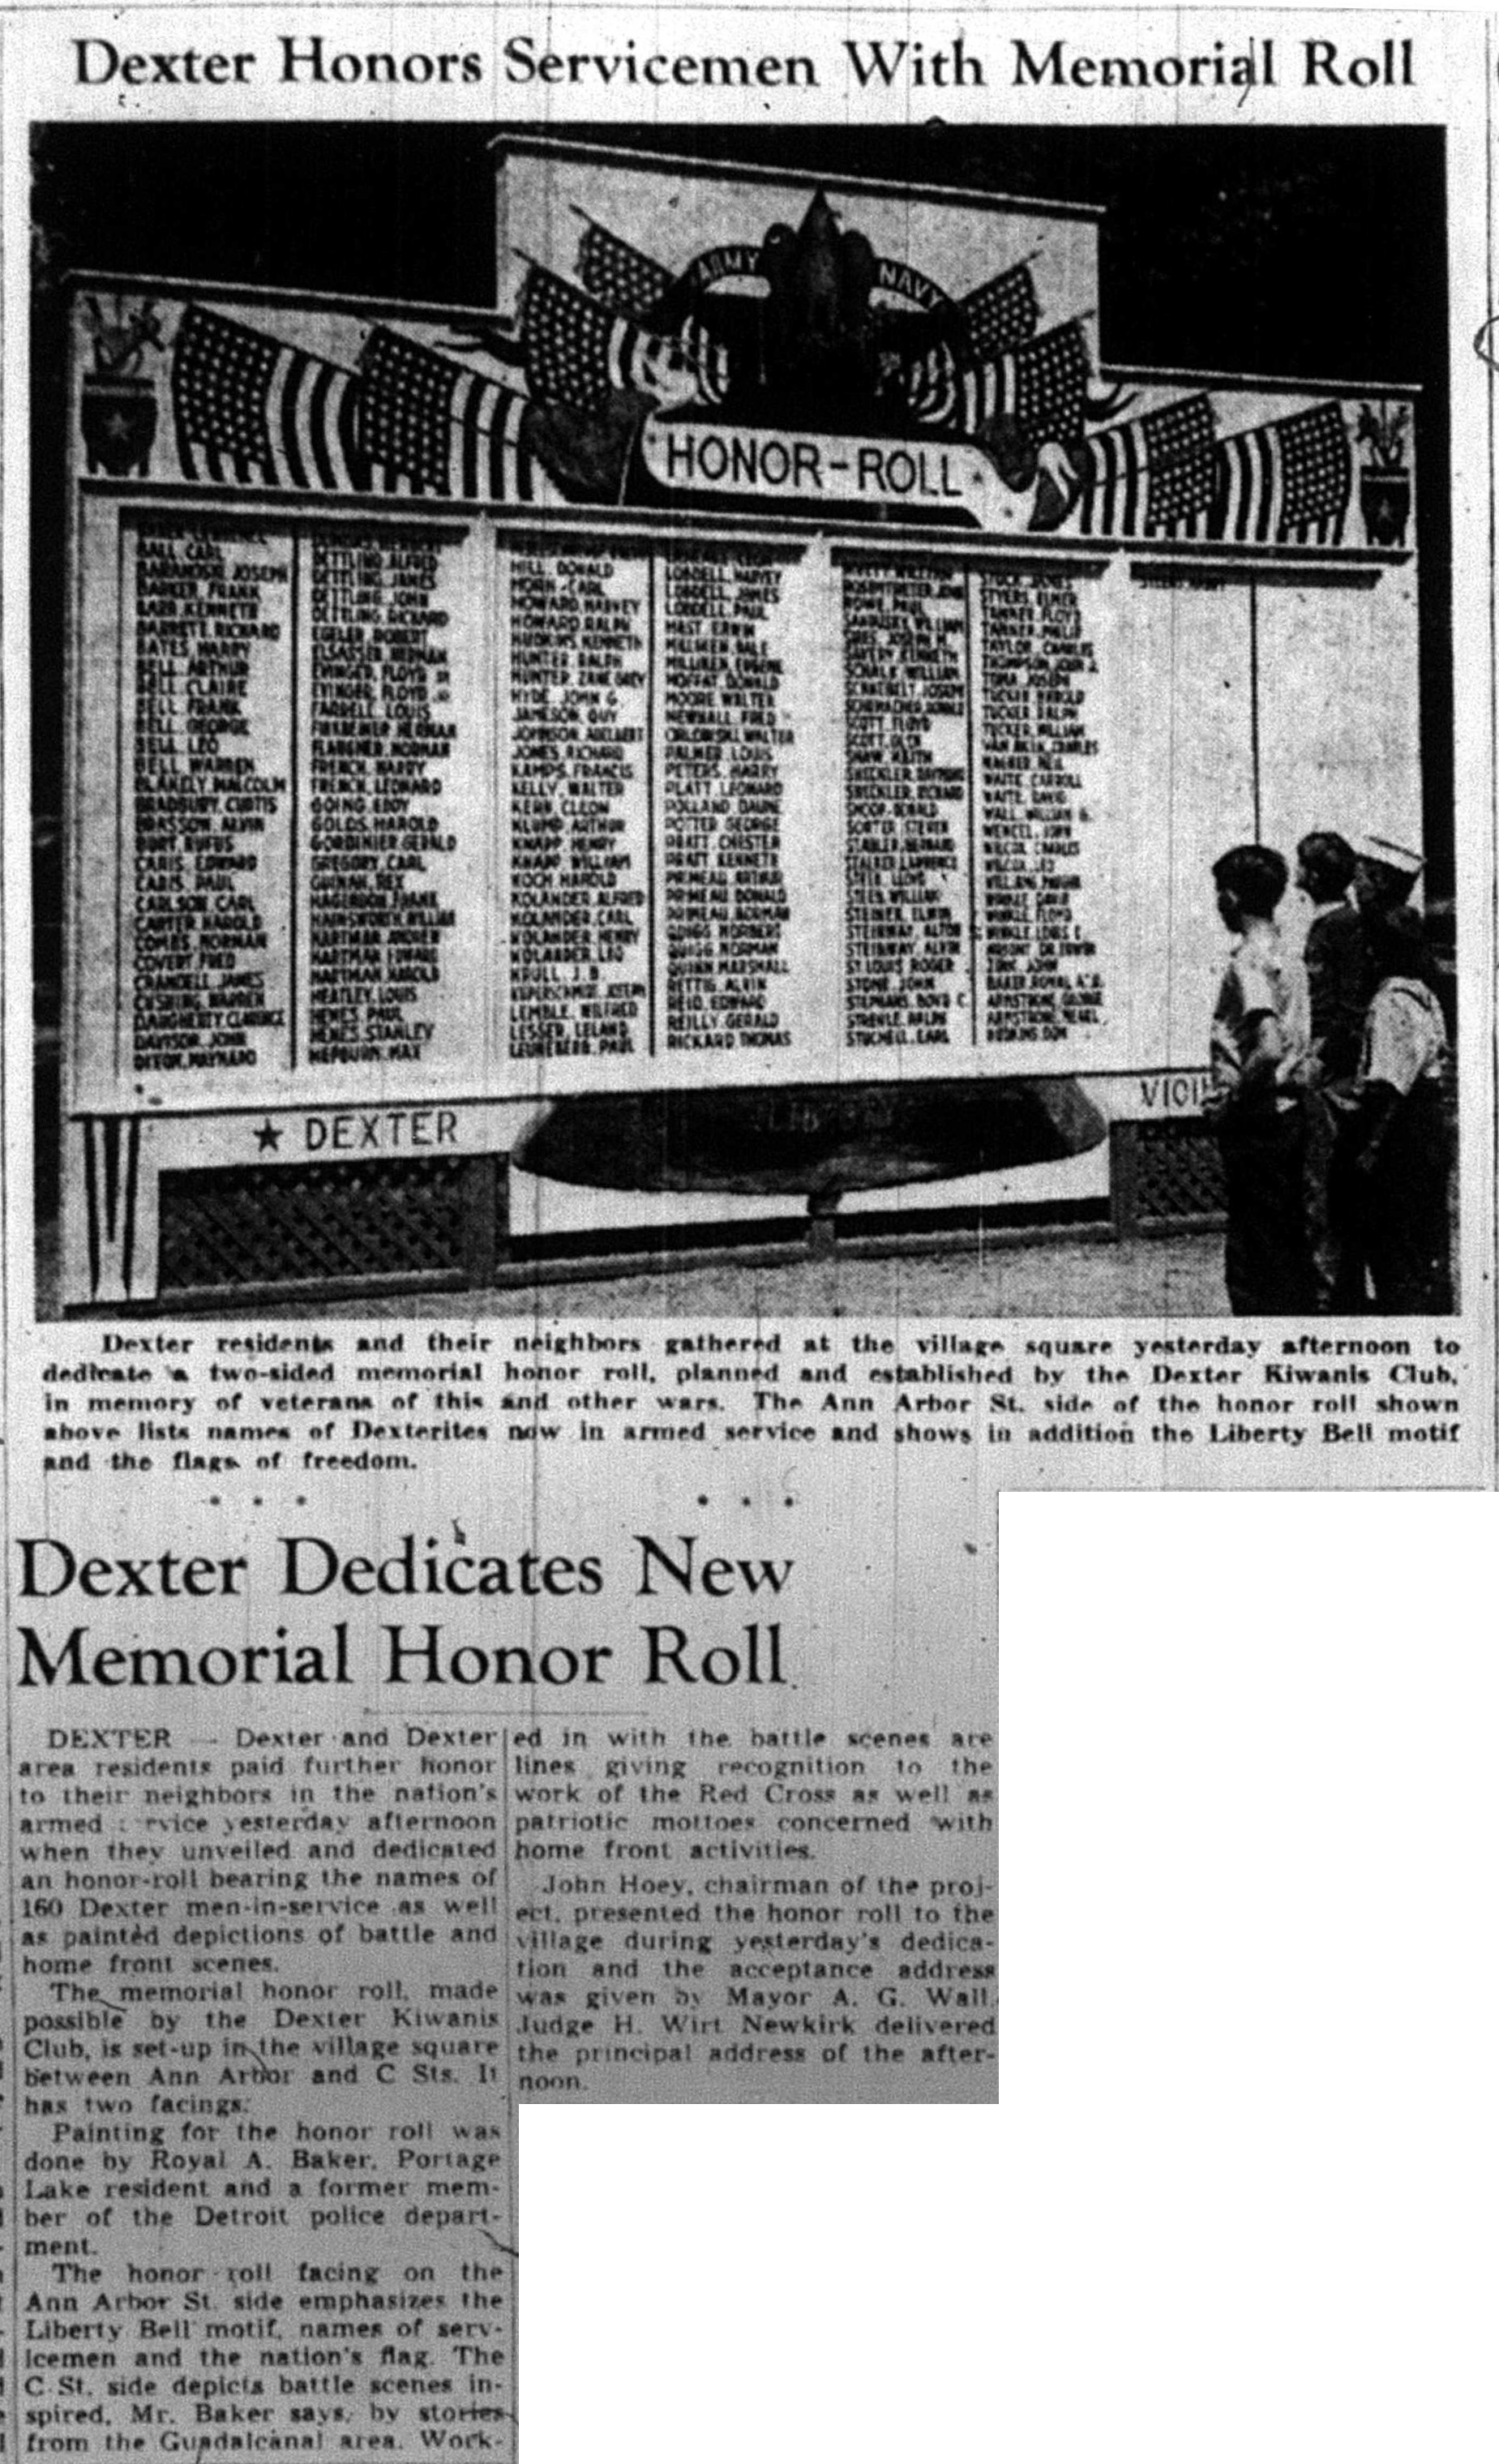 Dexter Honors Servicemen With Memorial Roll image